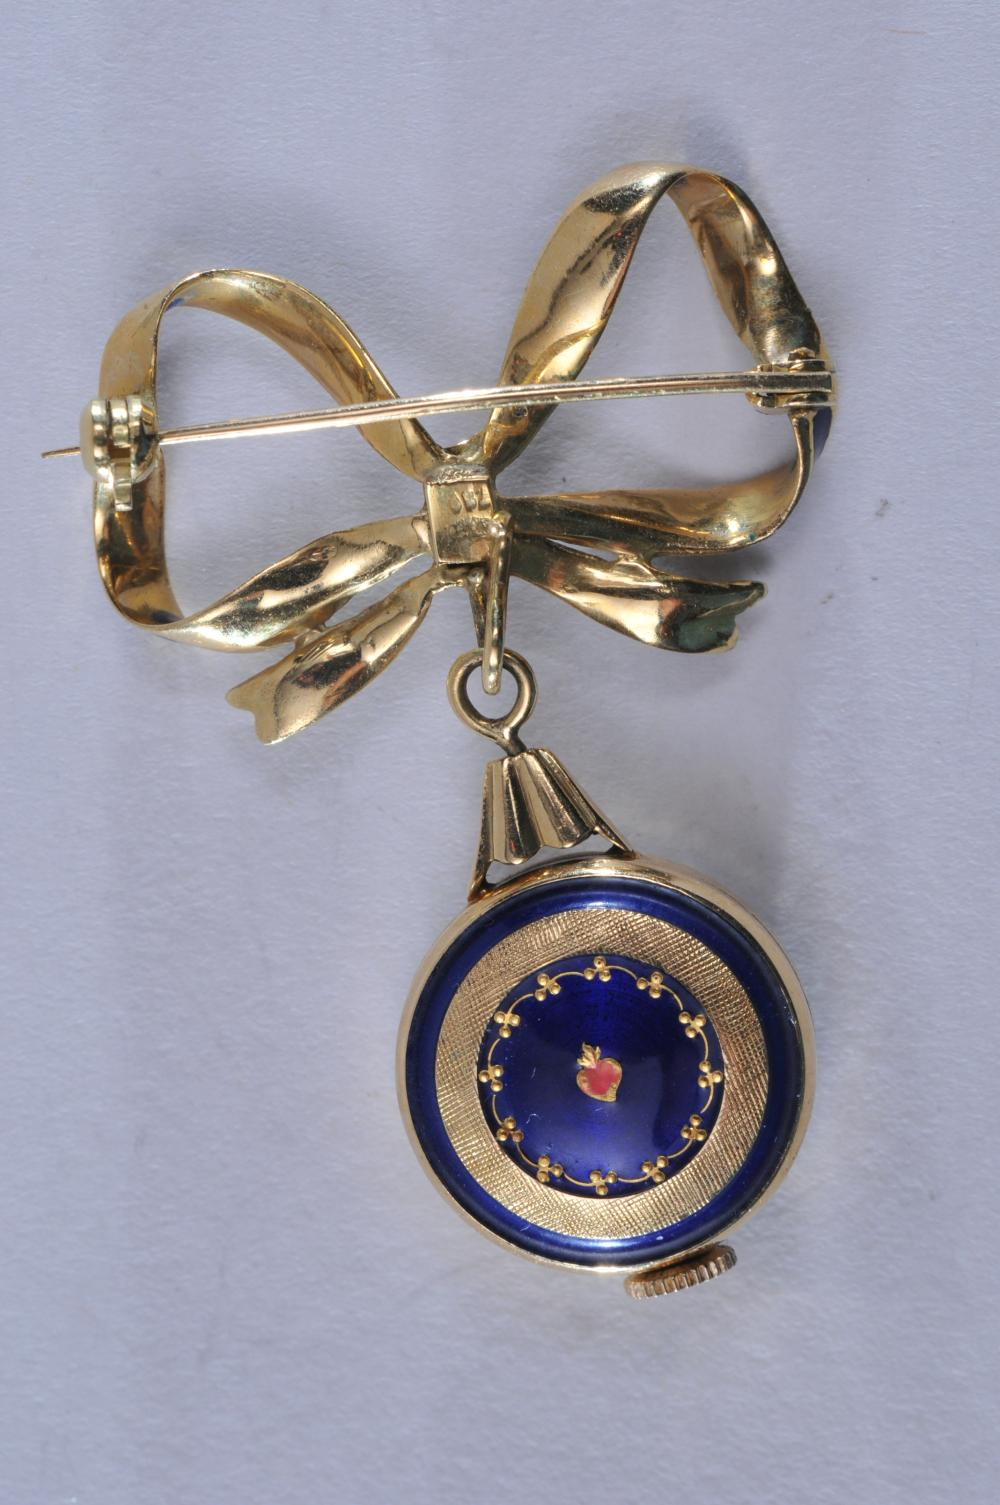 Lot 214: 18k yellow gold watch brooch. Blue bow design, featuring blue enamel accenting. Semag 17 jewel mechanical watch, runs and stops, but in overall nice condition with a crisp dial and gold hands and markers. Hallmarked 18k. Overall size of brooch is 45